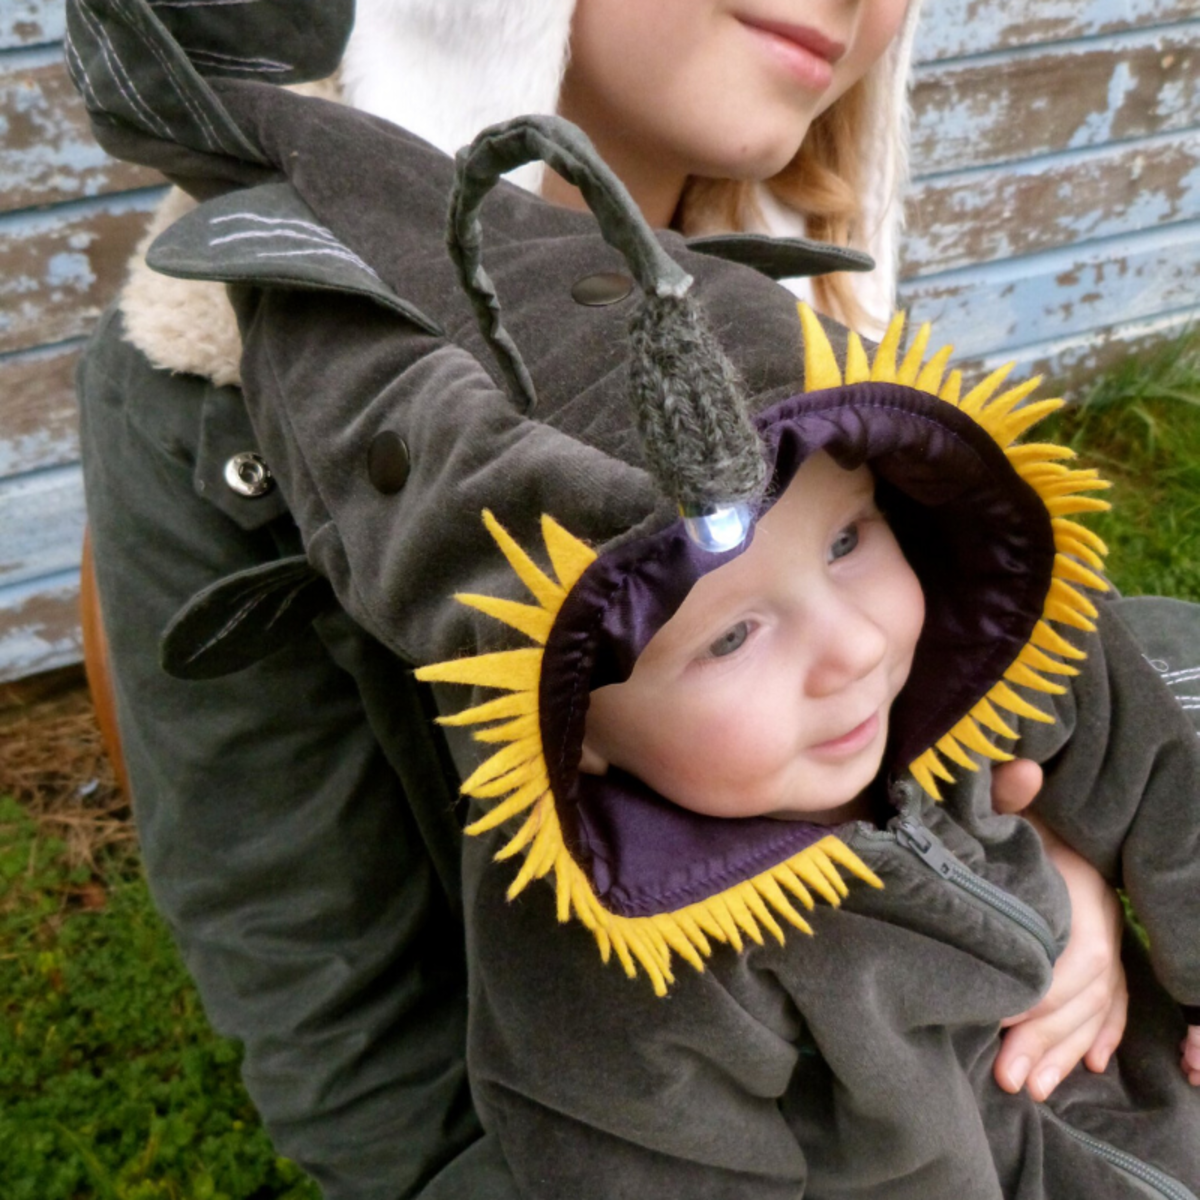 Funny themed bunting sets are cute, practical, and make for some stellar photo opportunities. This angler fish onesie is just too much!